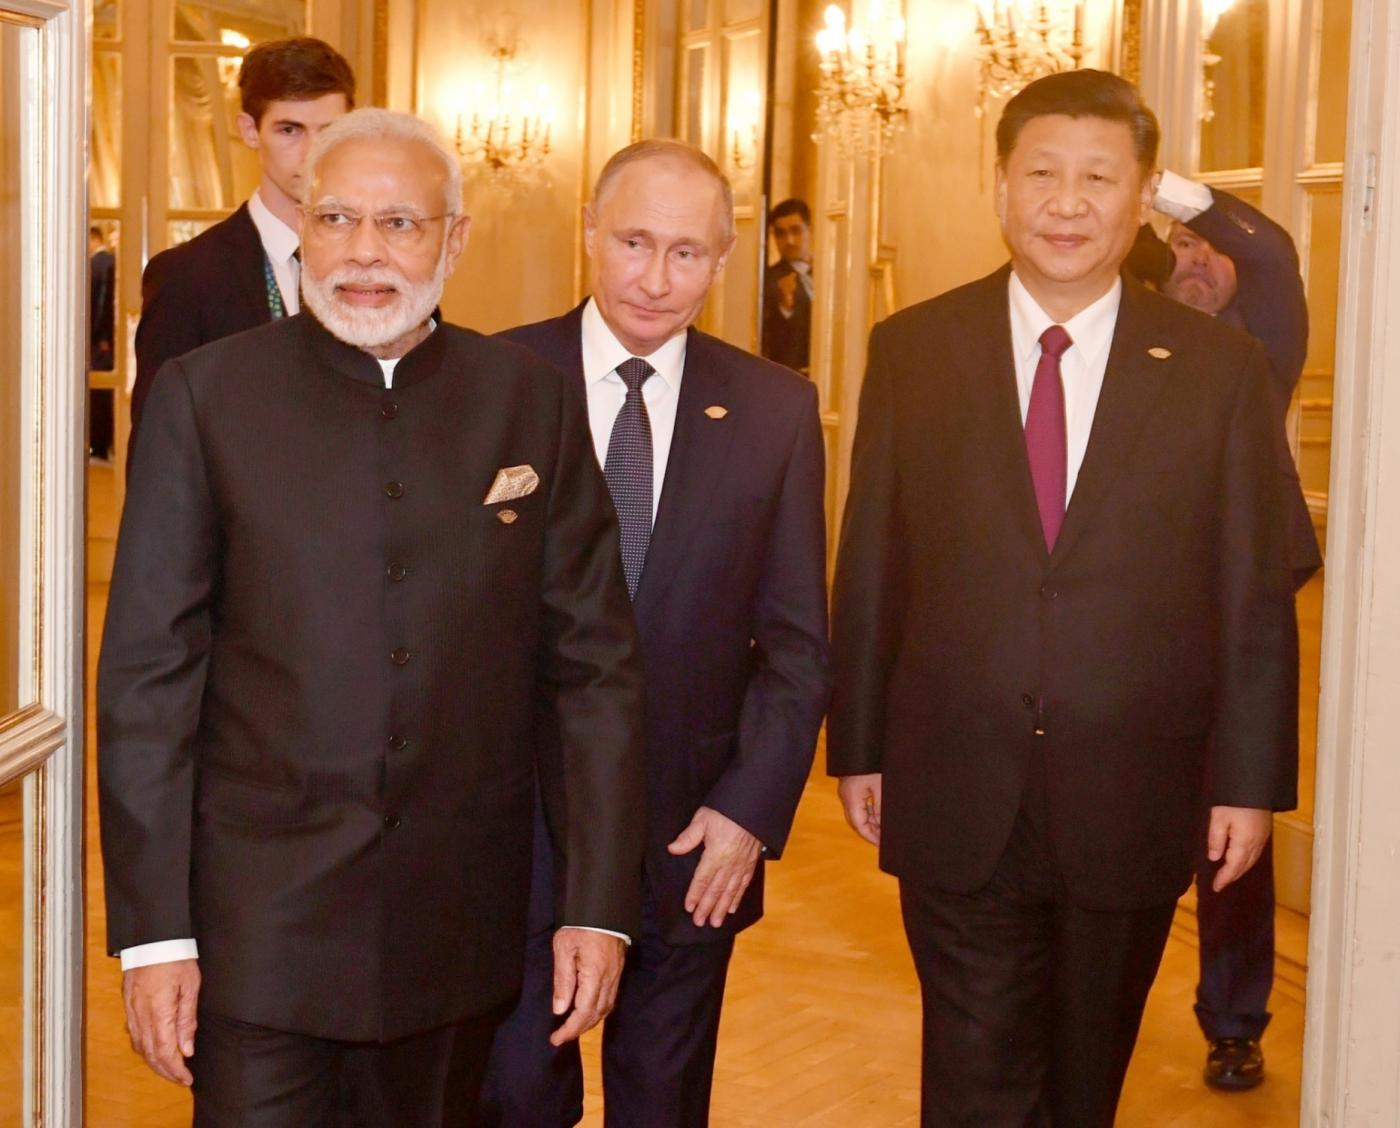 Buenos Aires: Prime Minister Narendra Modi, Russian President Vladimir Putin and Chinese President Xi Jinping at the RIC (Russia, India, China) Informal Summit, in Buenos Aires, Argentina on Nov 30, 2018. (Photo: IANS/PIB) by .